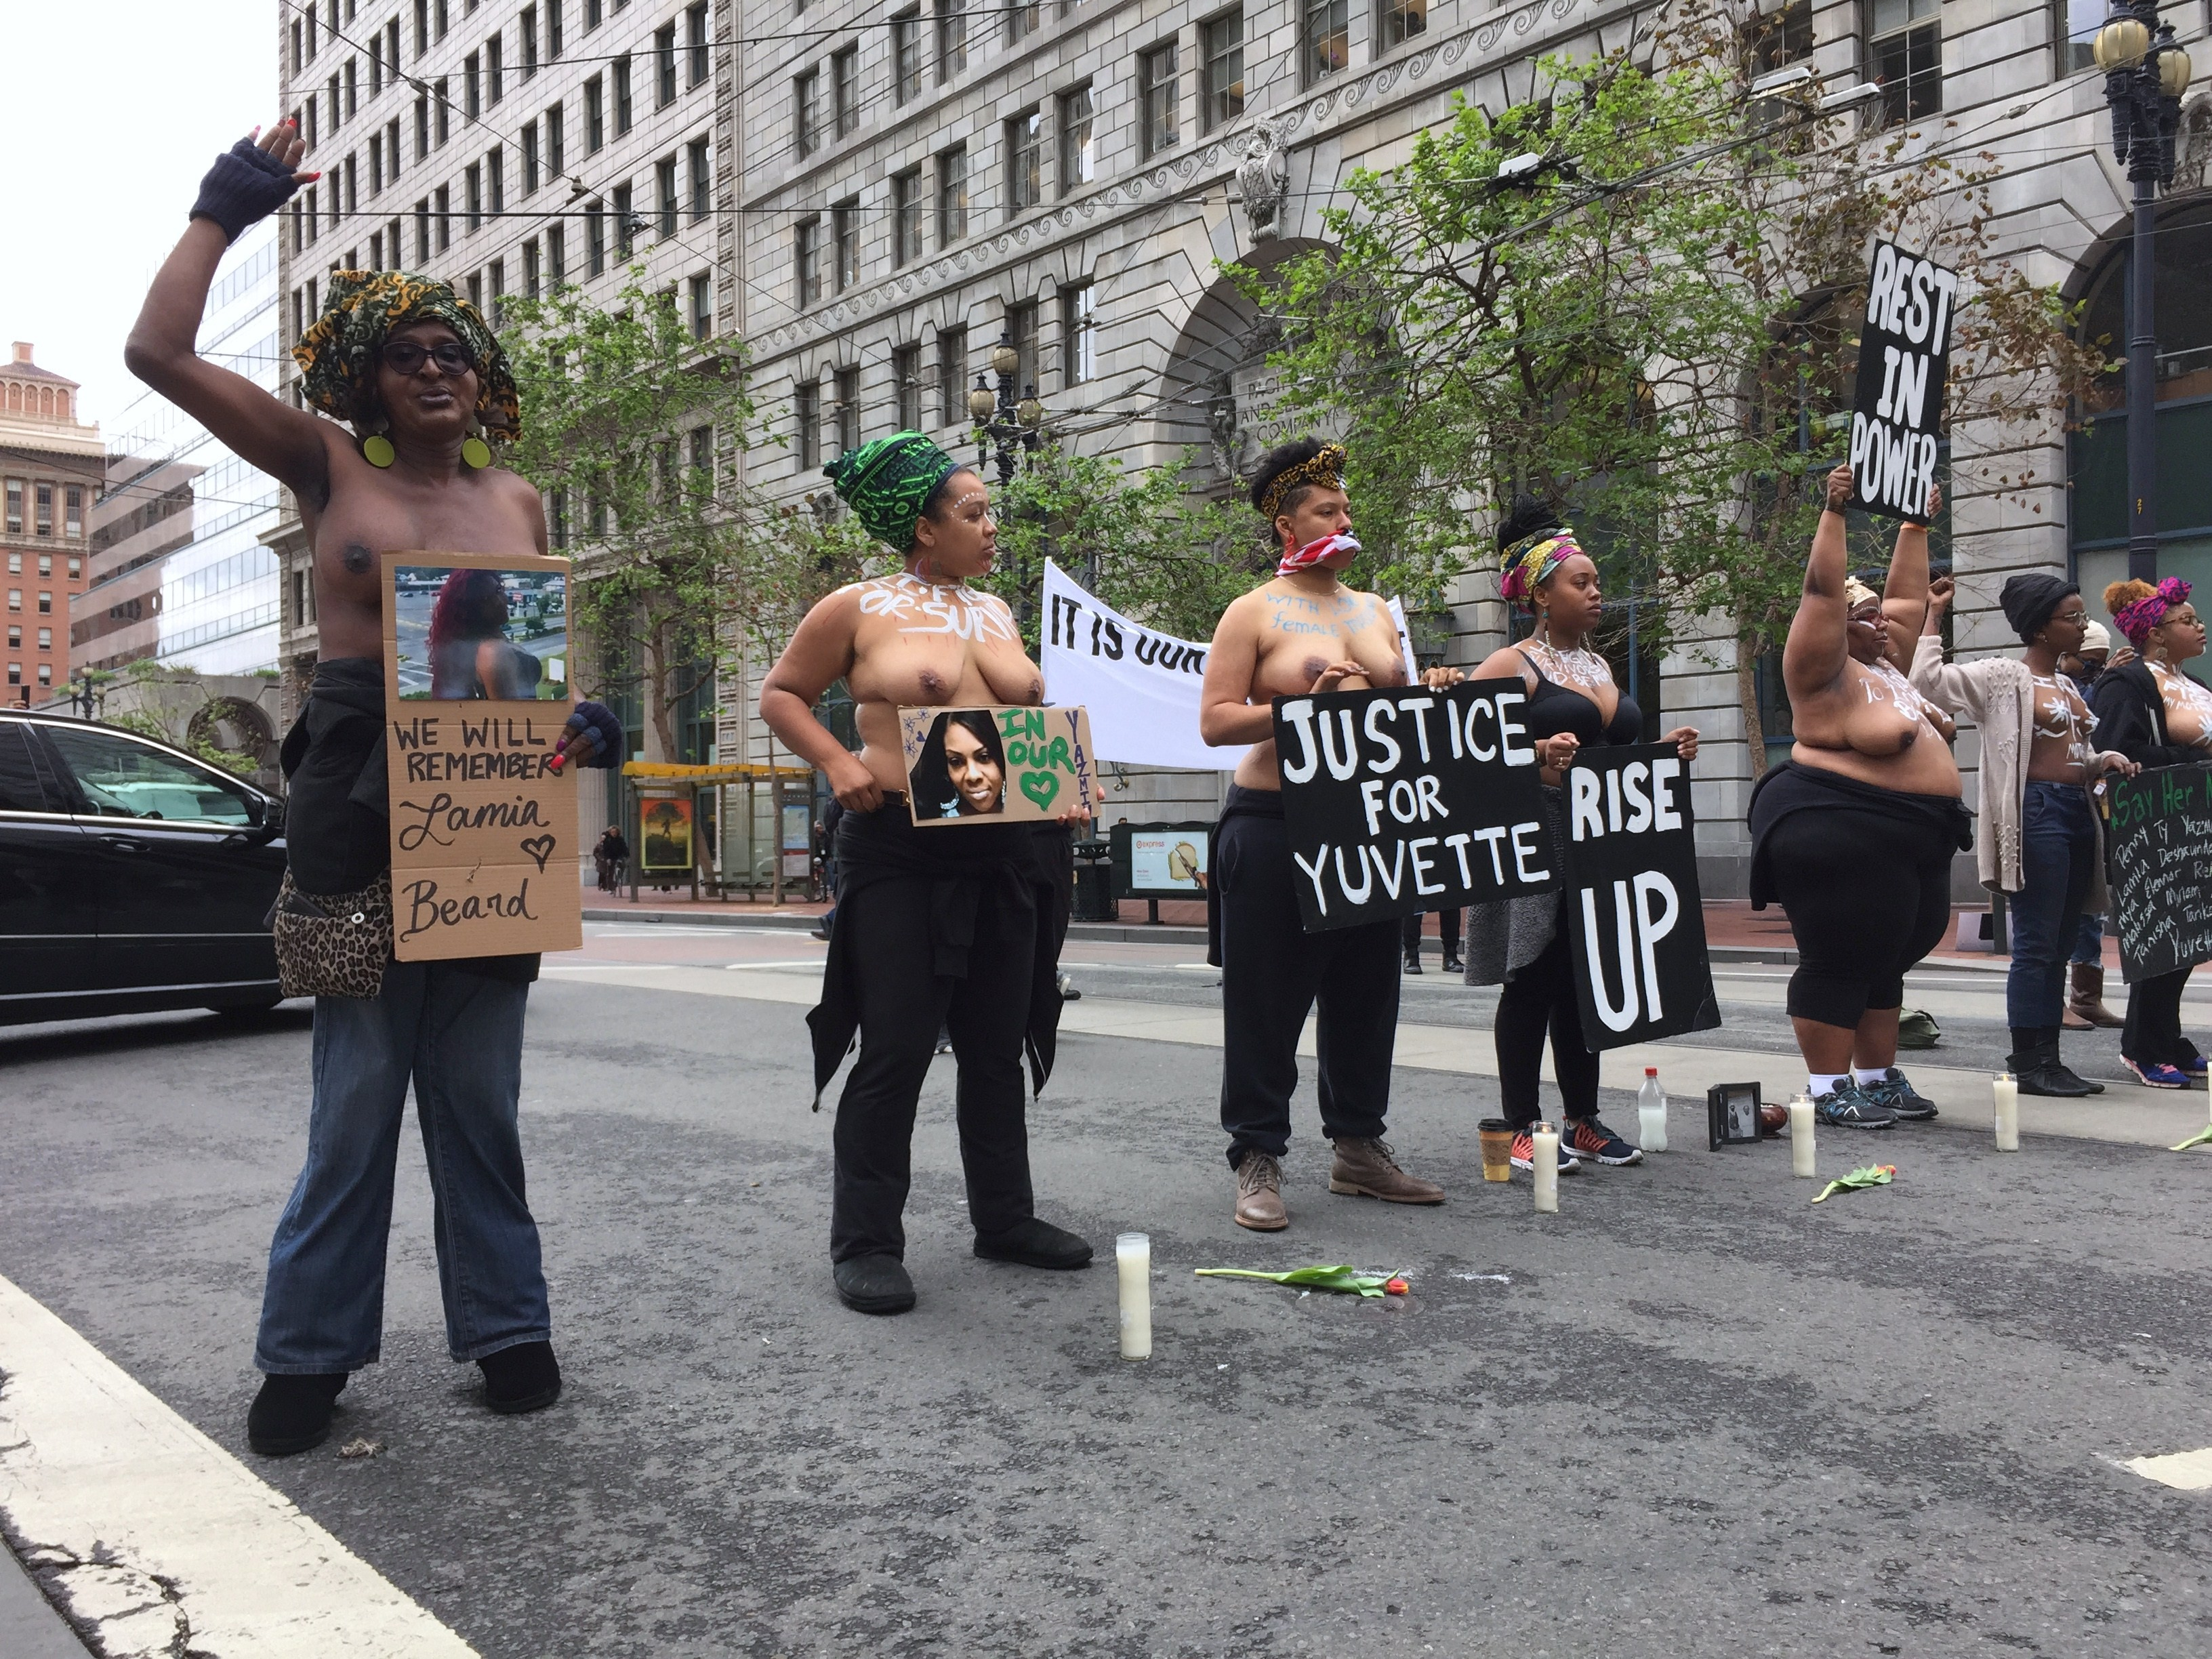 naked Black women public protesting in